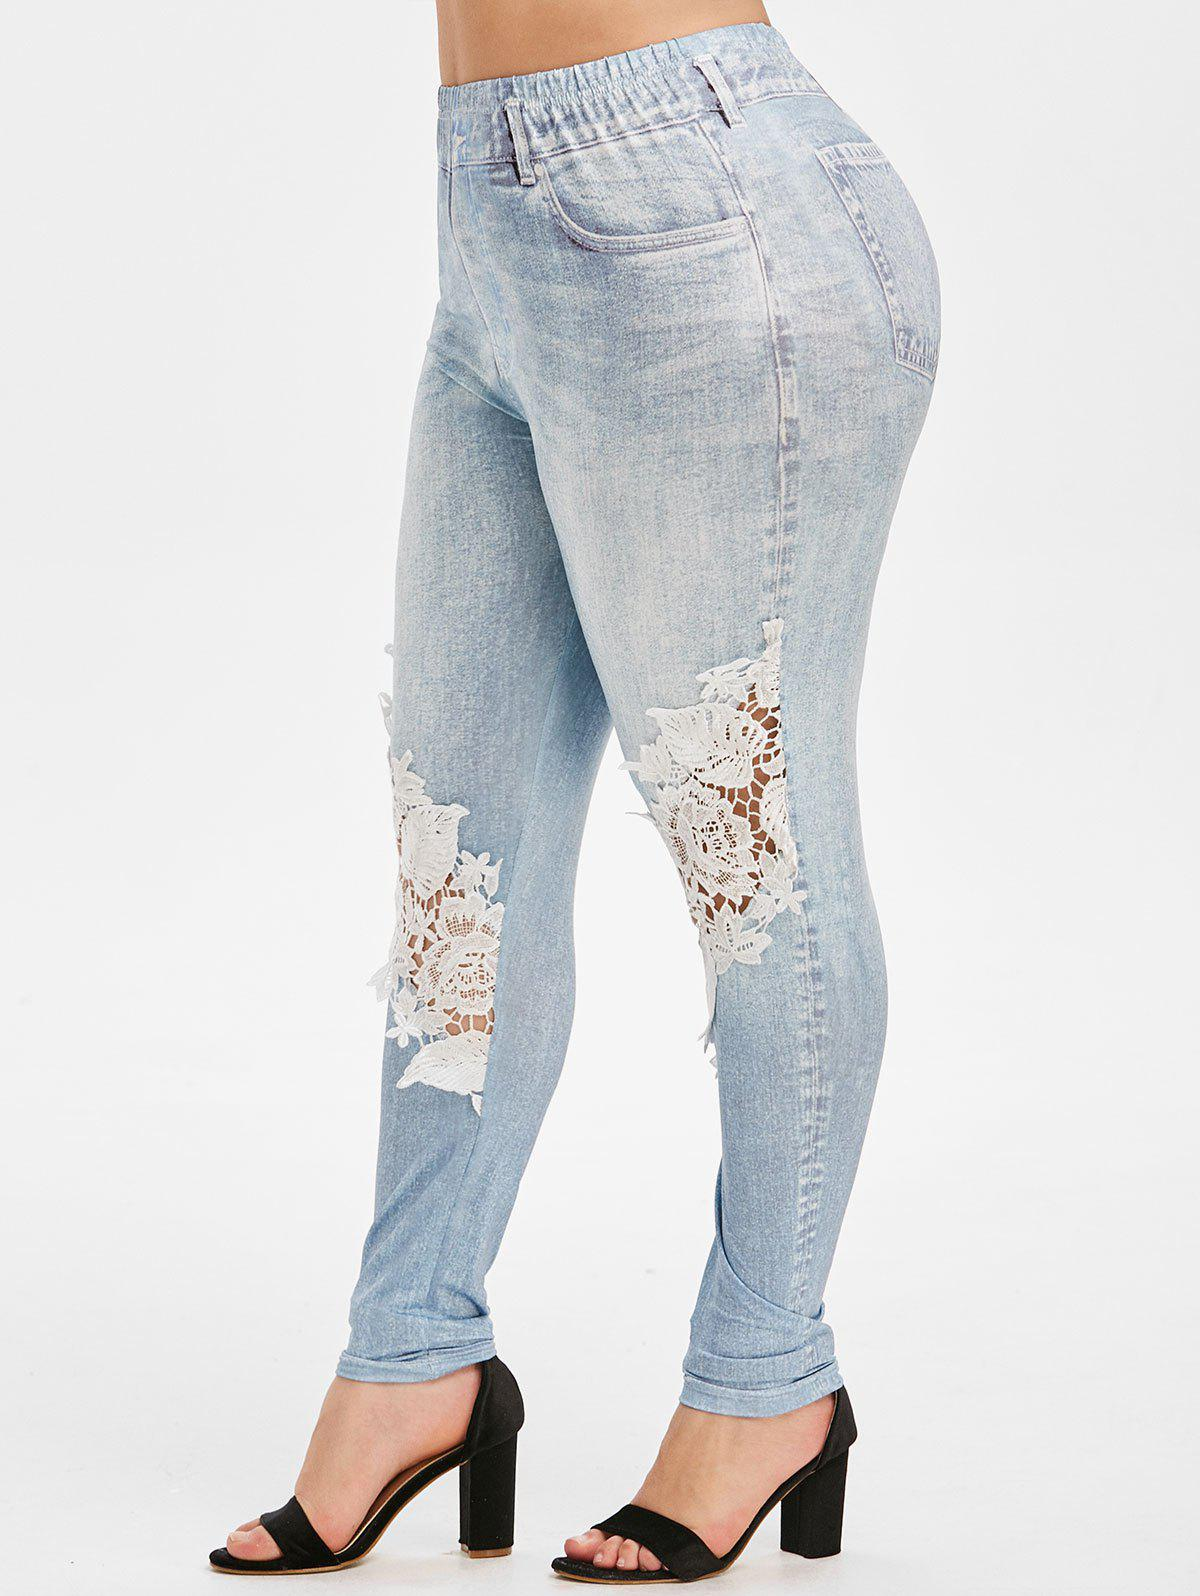 Chic High Waisted Printed Lace Patched Plus Size Jeggings